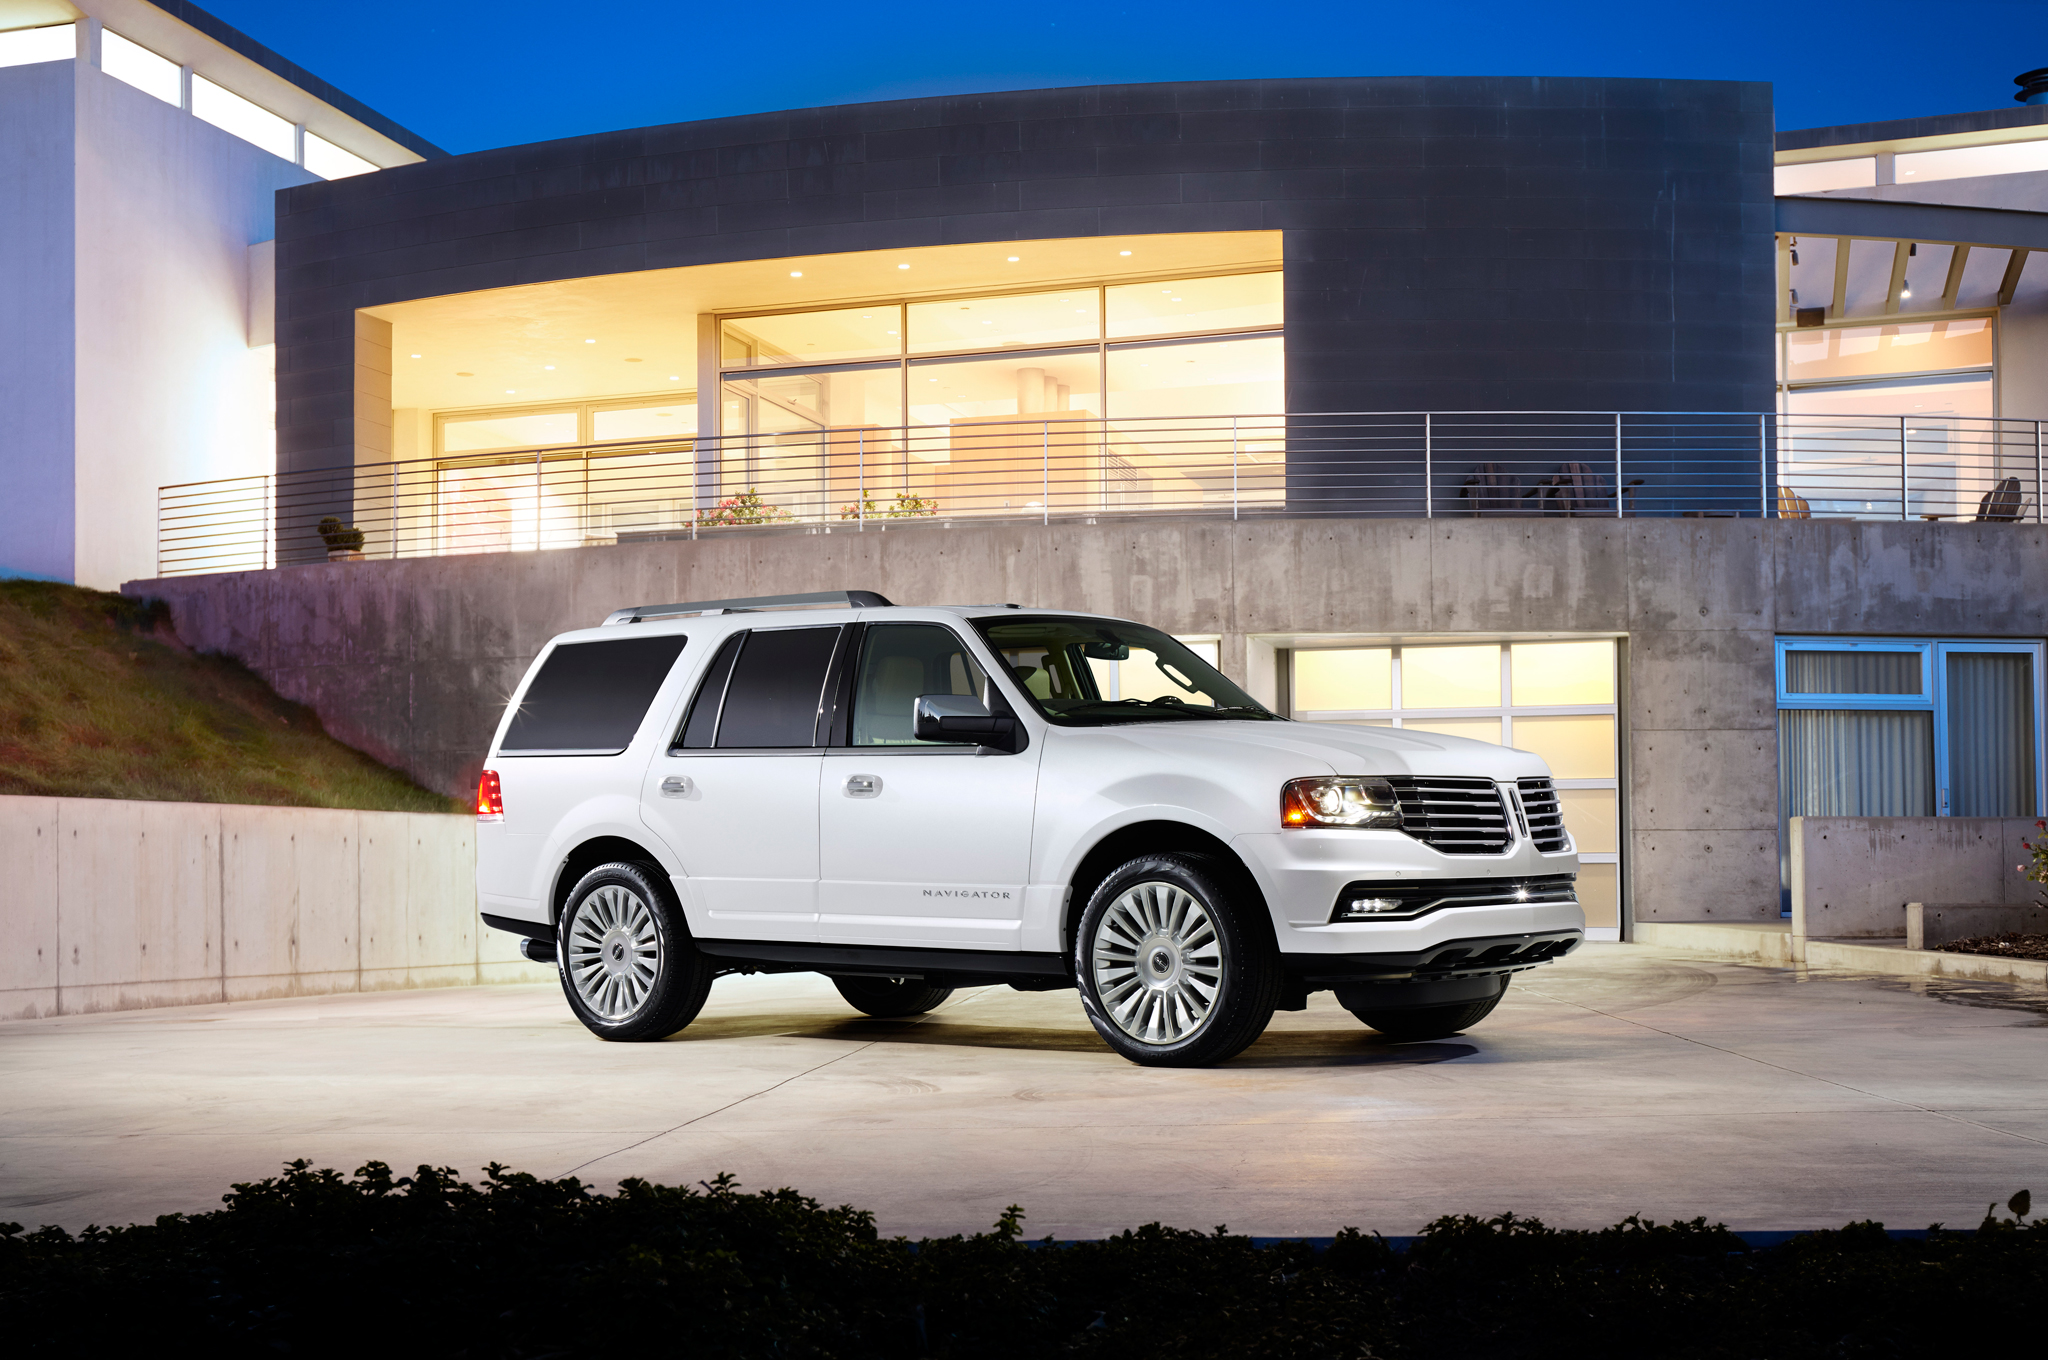 2015 lincoln navigator clipart graphic royalty free stock AutomotiveTimes.com | Lincoln Navigator 2015 Photo Gallery graphic royalty free stock